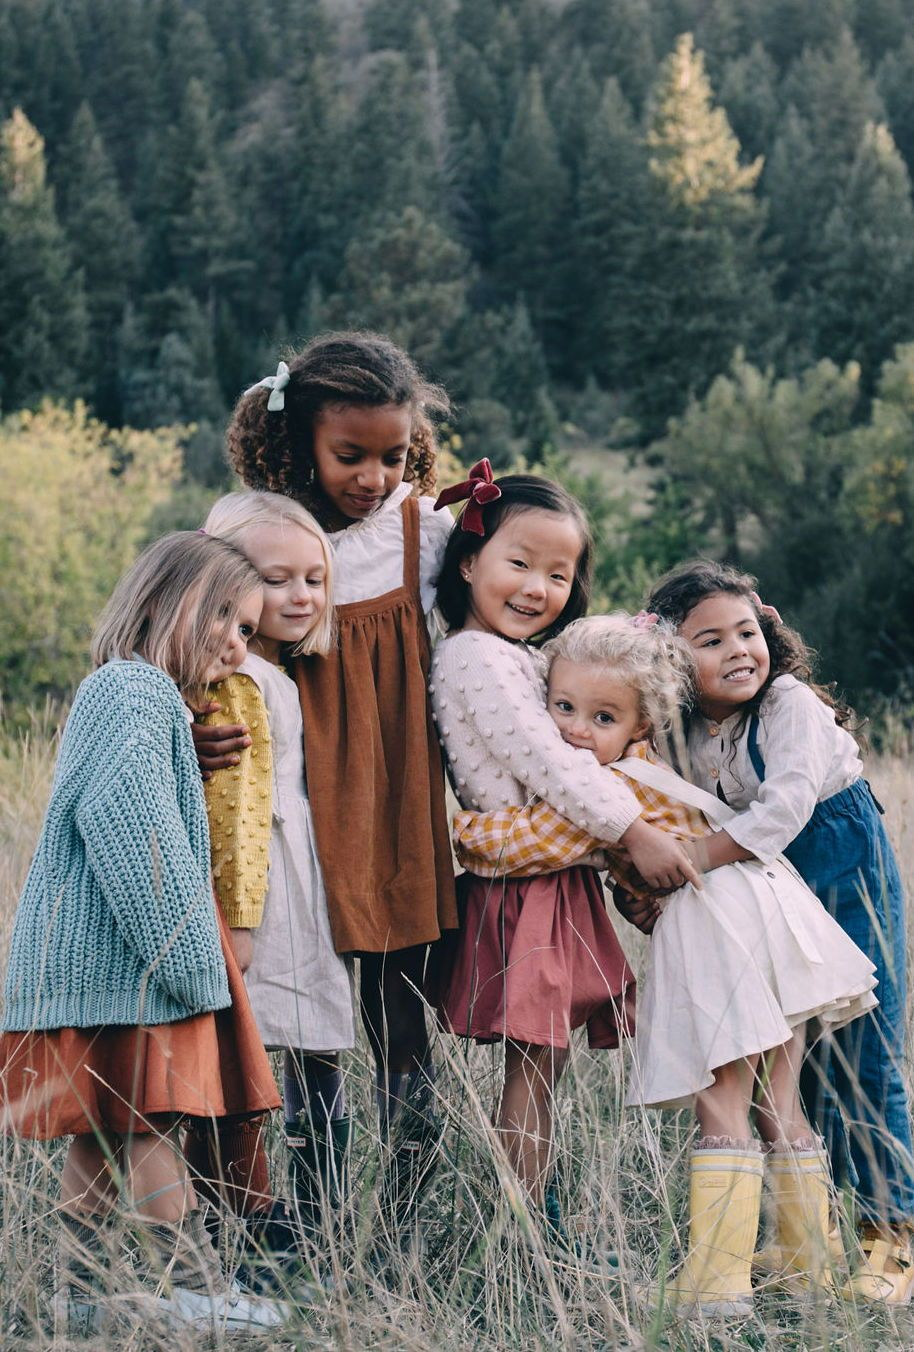 Luxe Velvets Collection - Wunderkin Co. Handmade velvet hair bows for your baby, toddler, or little girl and her free spirited style. Perfect for fall and winter adventures.